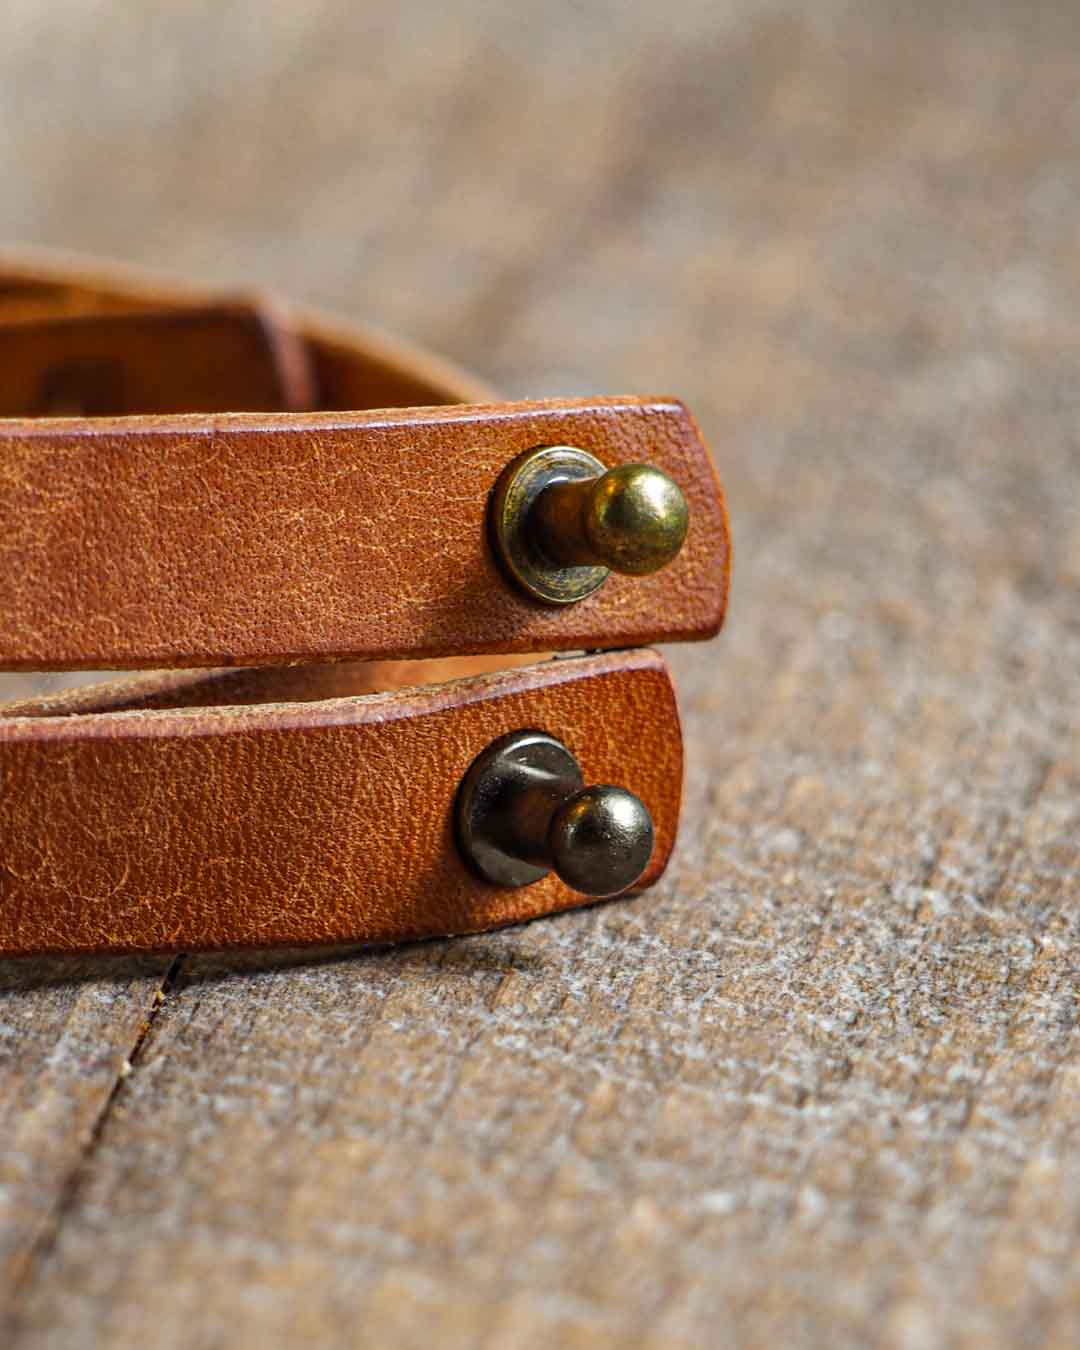 Luava handcrafted leather wrist band veg tan badalassi carlo pueblo cognac single stud option